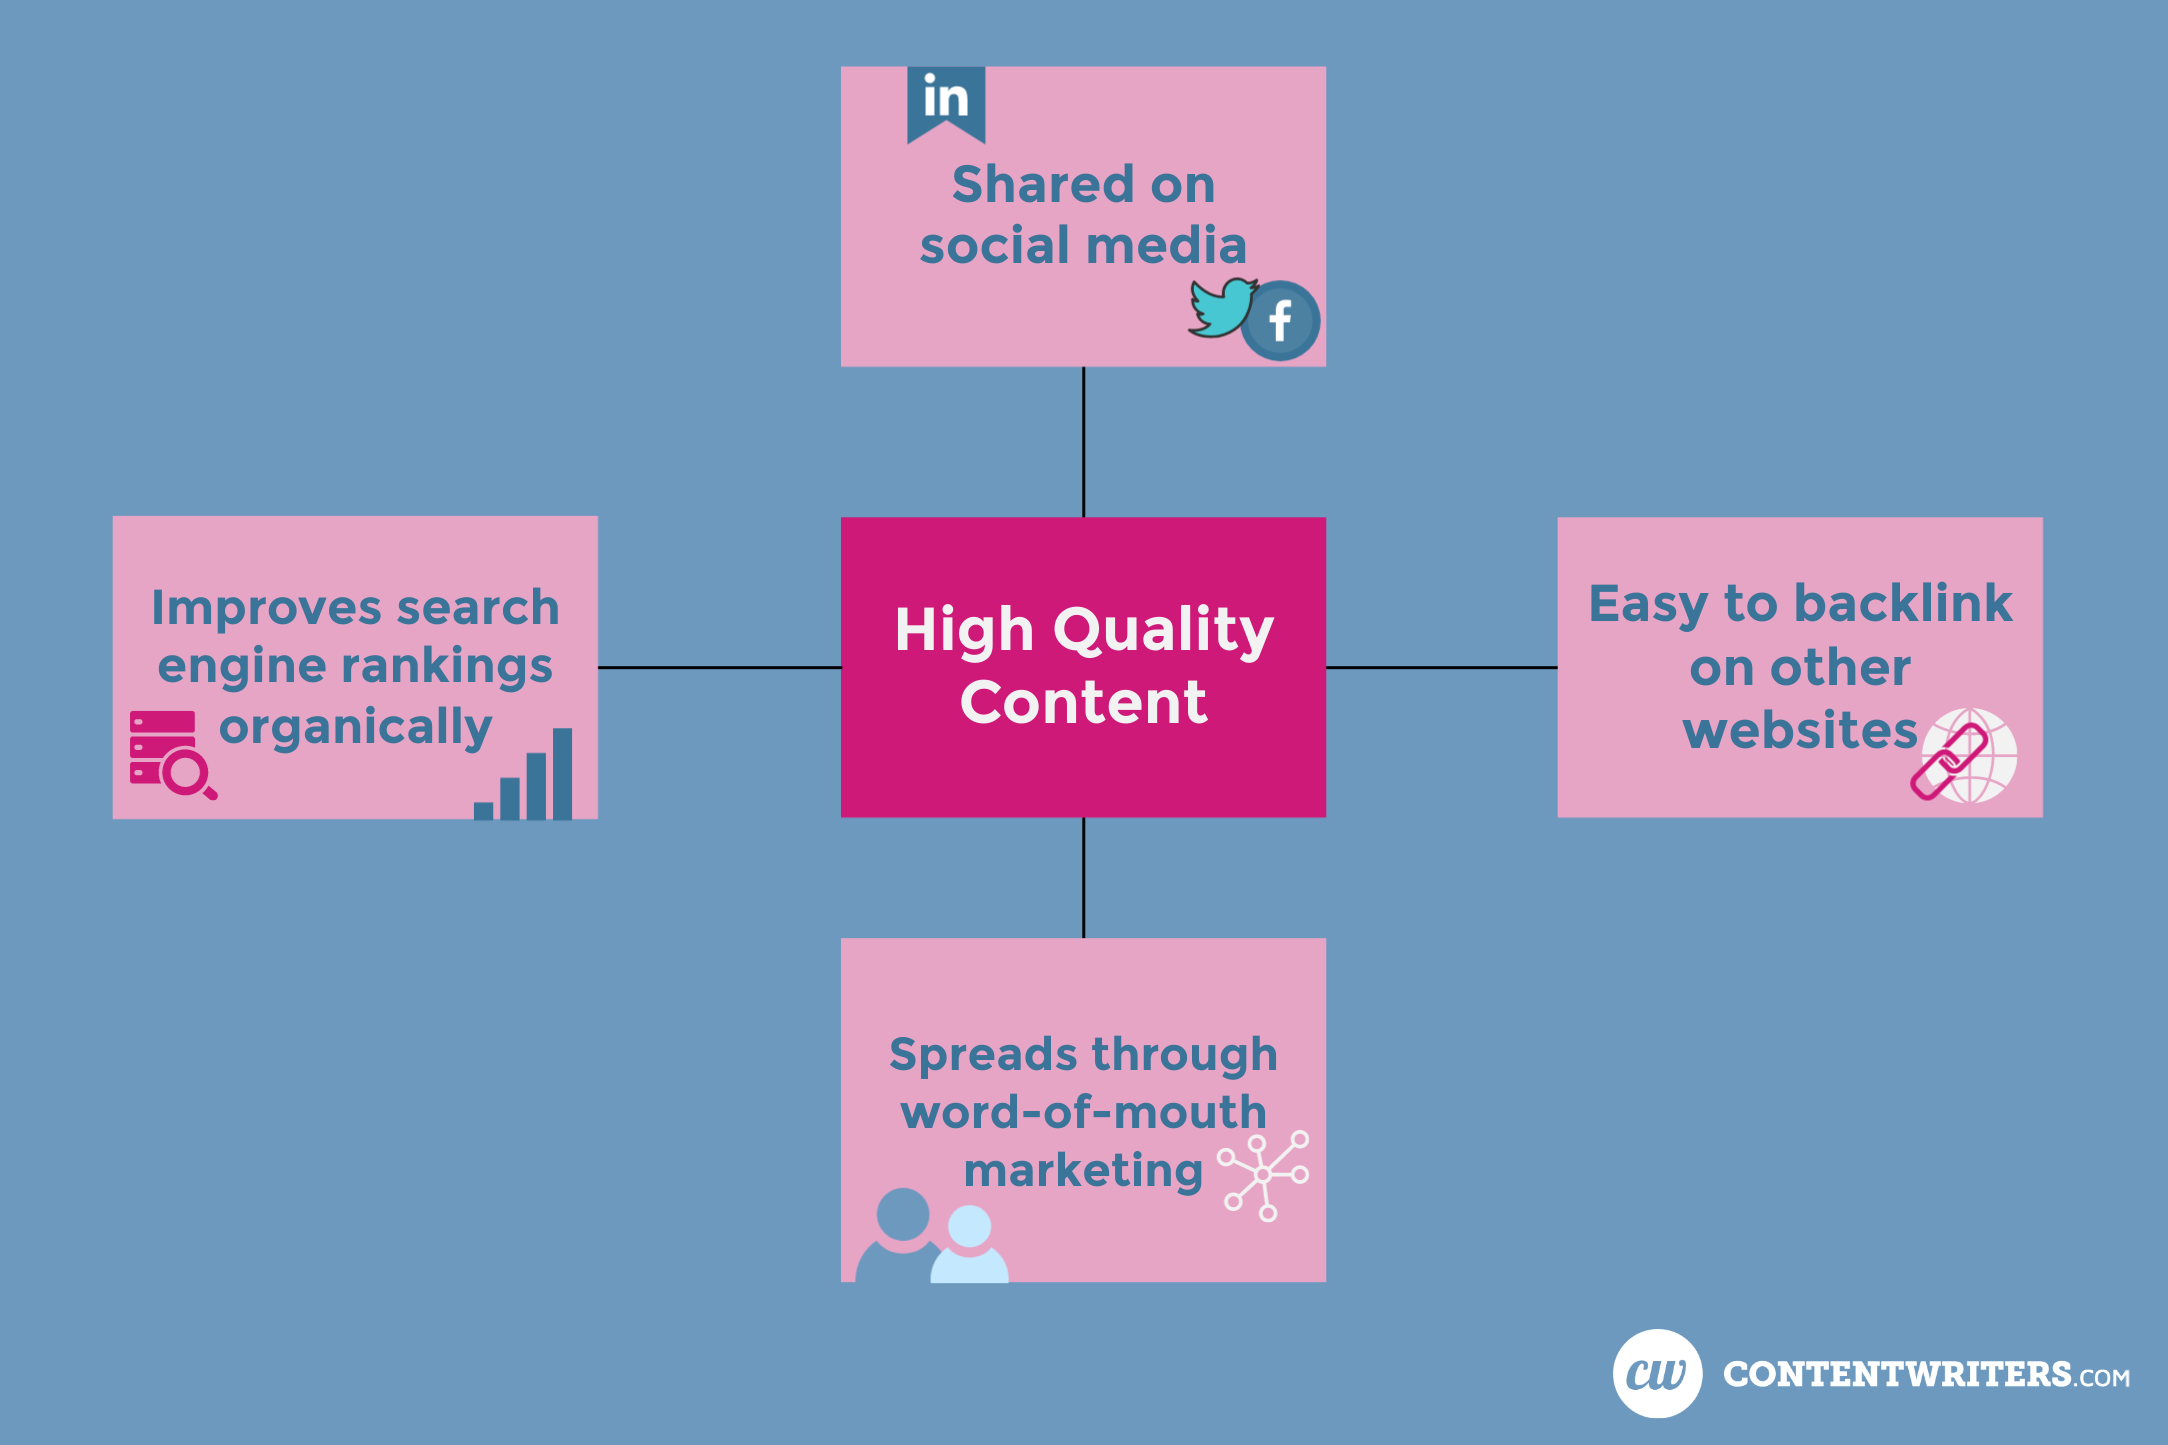 High Quality Content gets shared on social media, is easy to backlink on other websites, spreads through word of mouth marketing, and improves search engine rankings organically ContentWriters